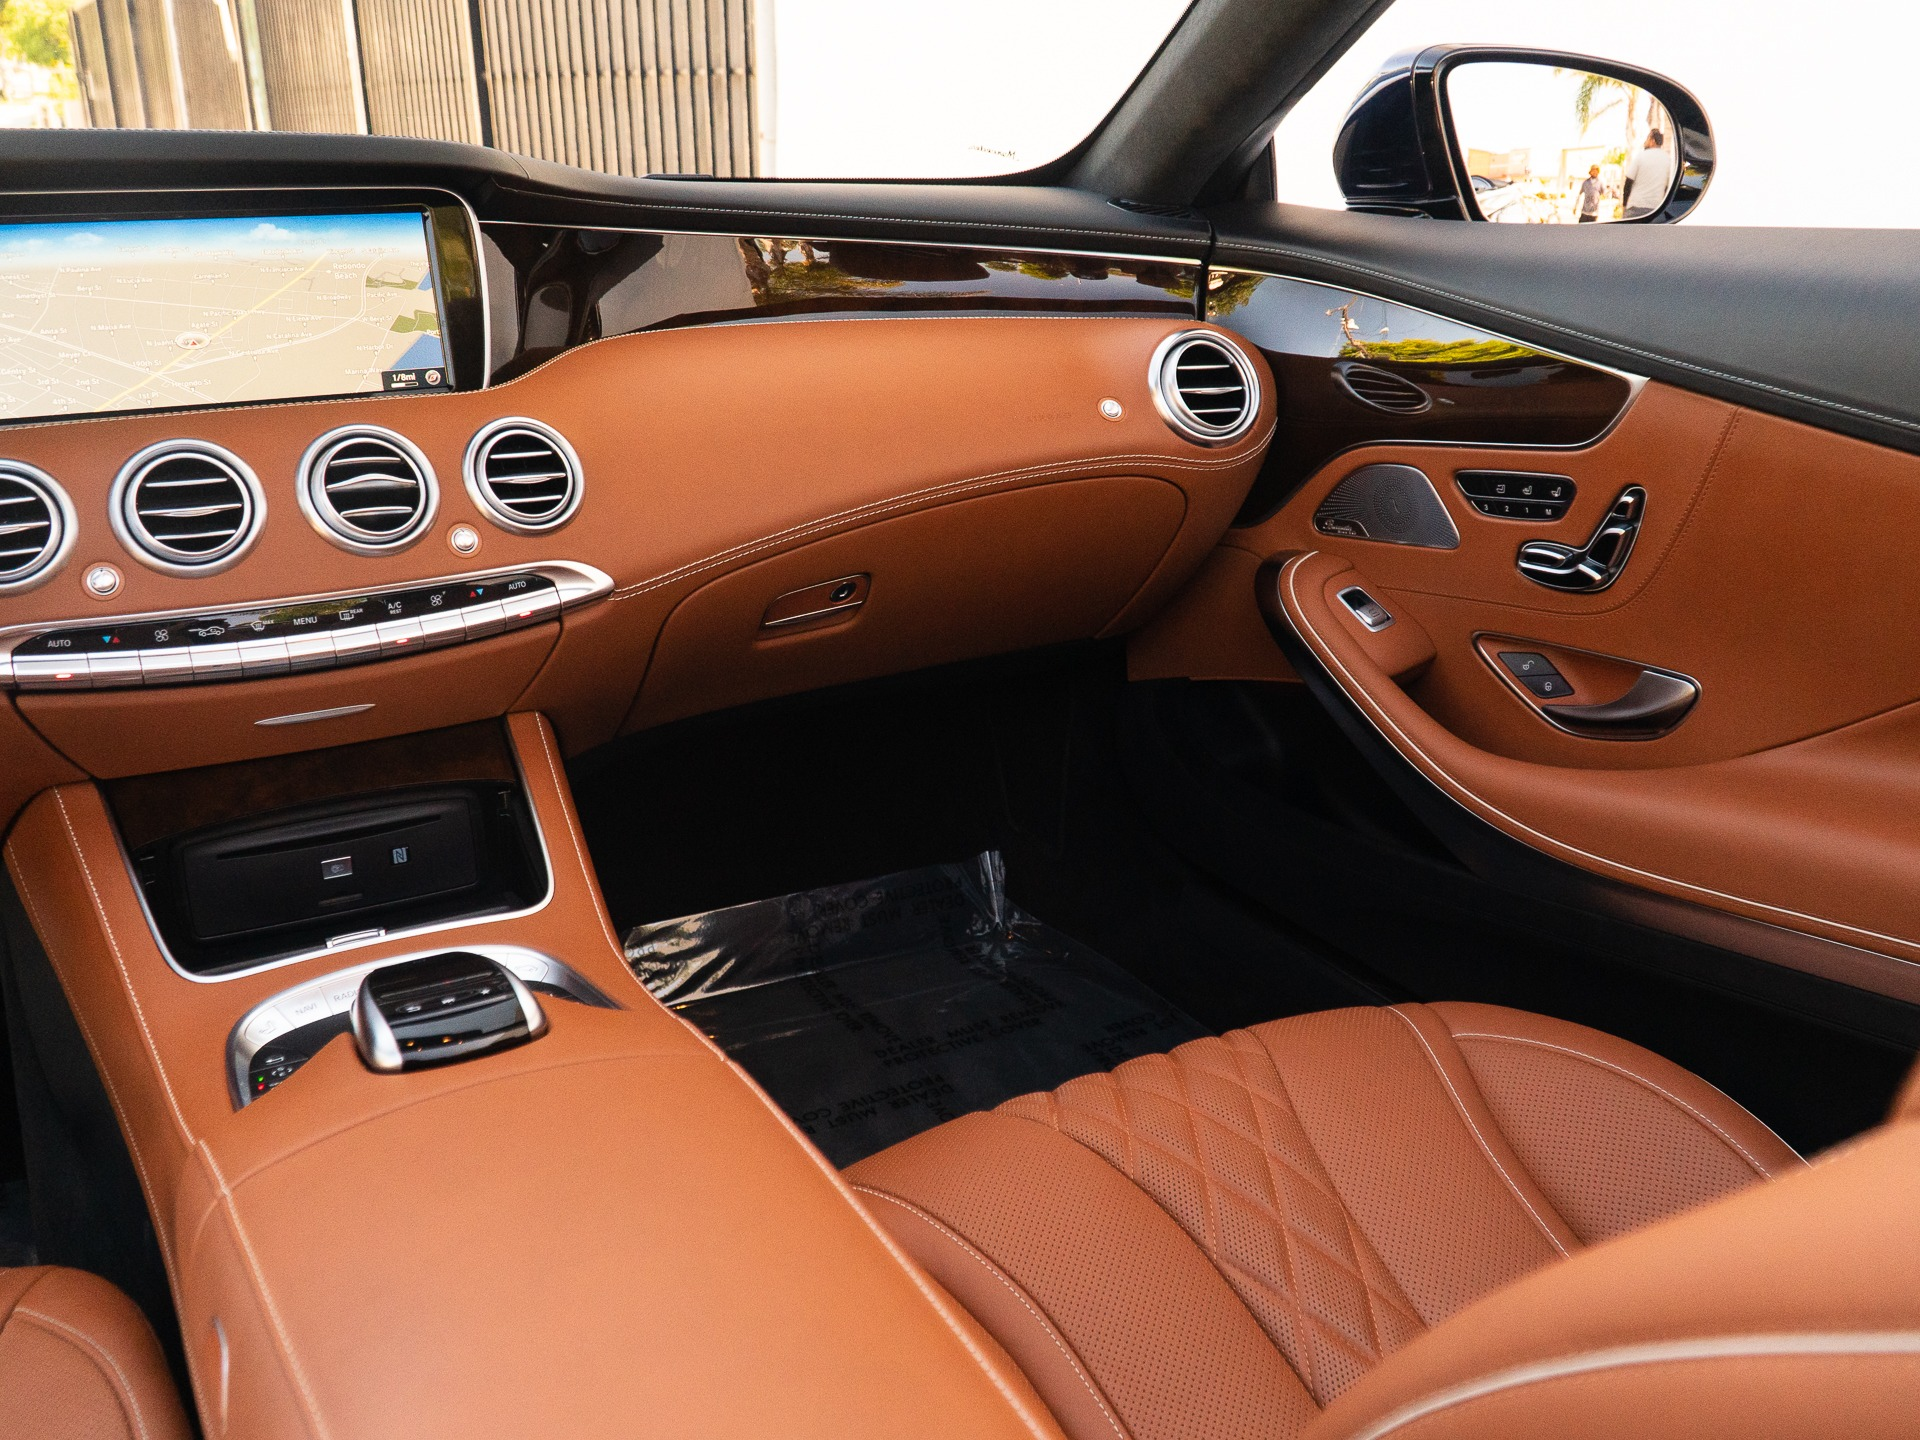 Used Vehicles Near Me >> 2017 Mercedes-Benz S-Class S 550 Stock # 6681 for sale ...